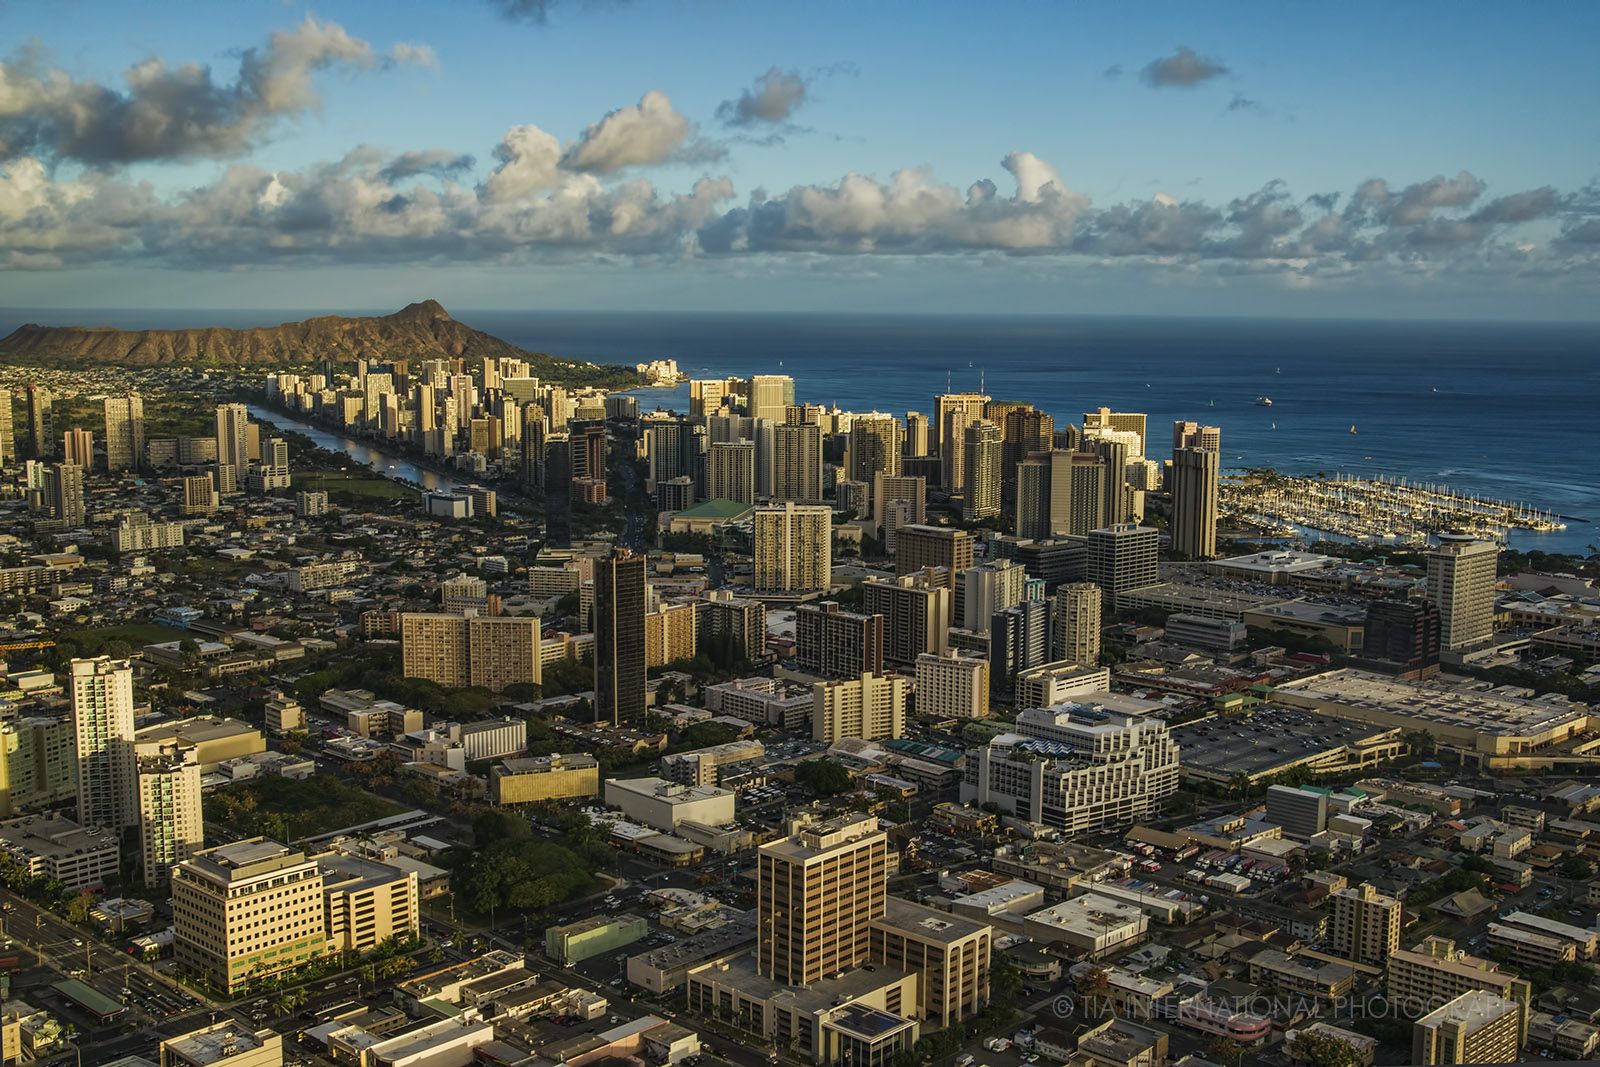 Aerial view of Honolulu, Hawaii.